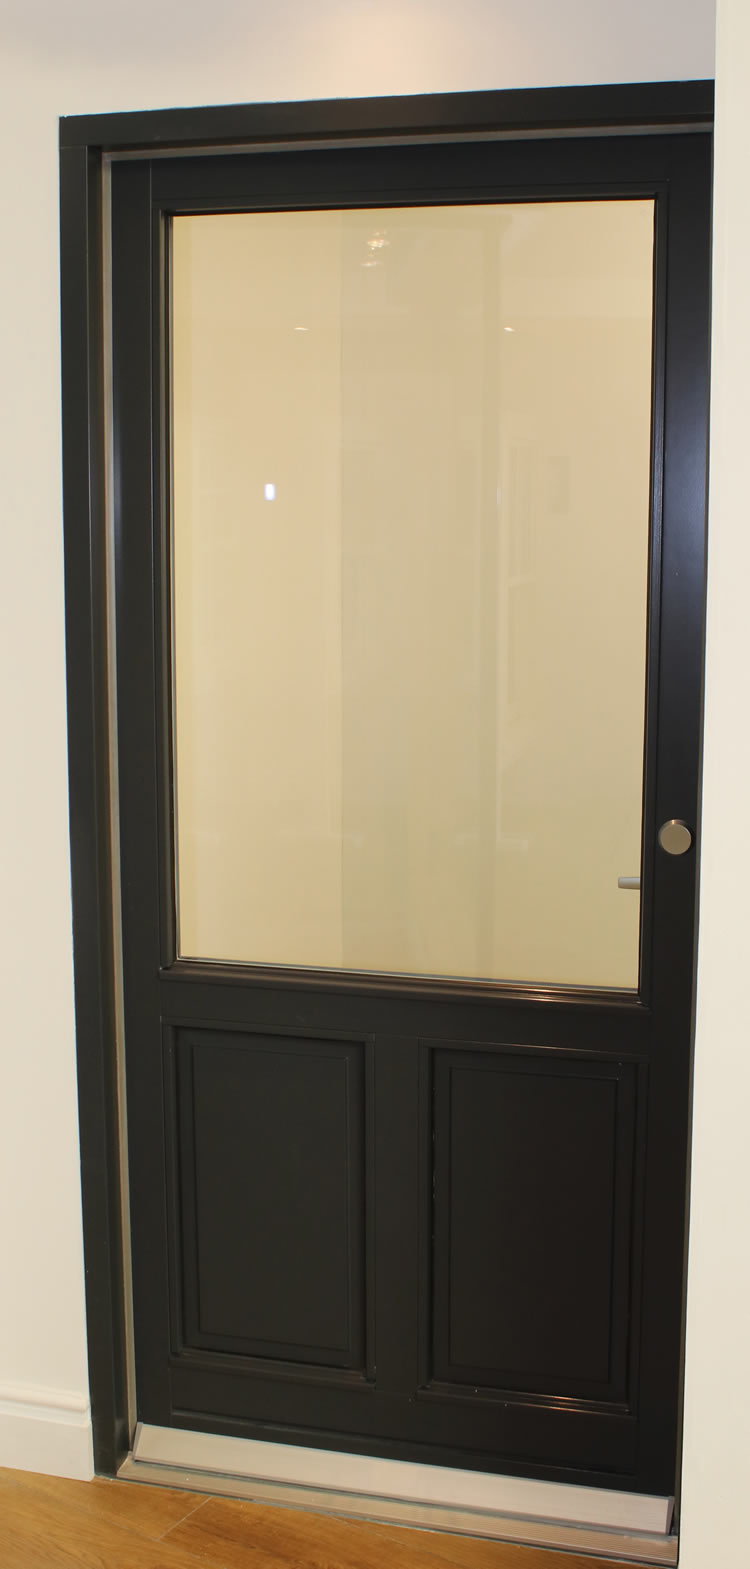 Youghal Glass Authorised Reseller Viking Windows Doors Tipperary